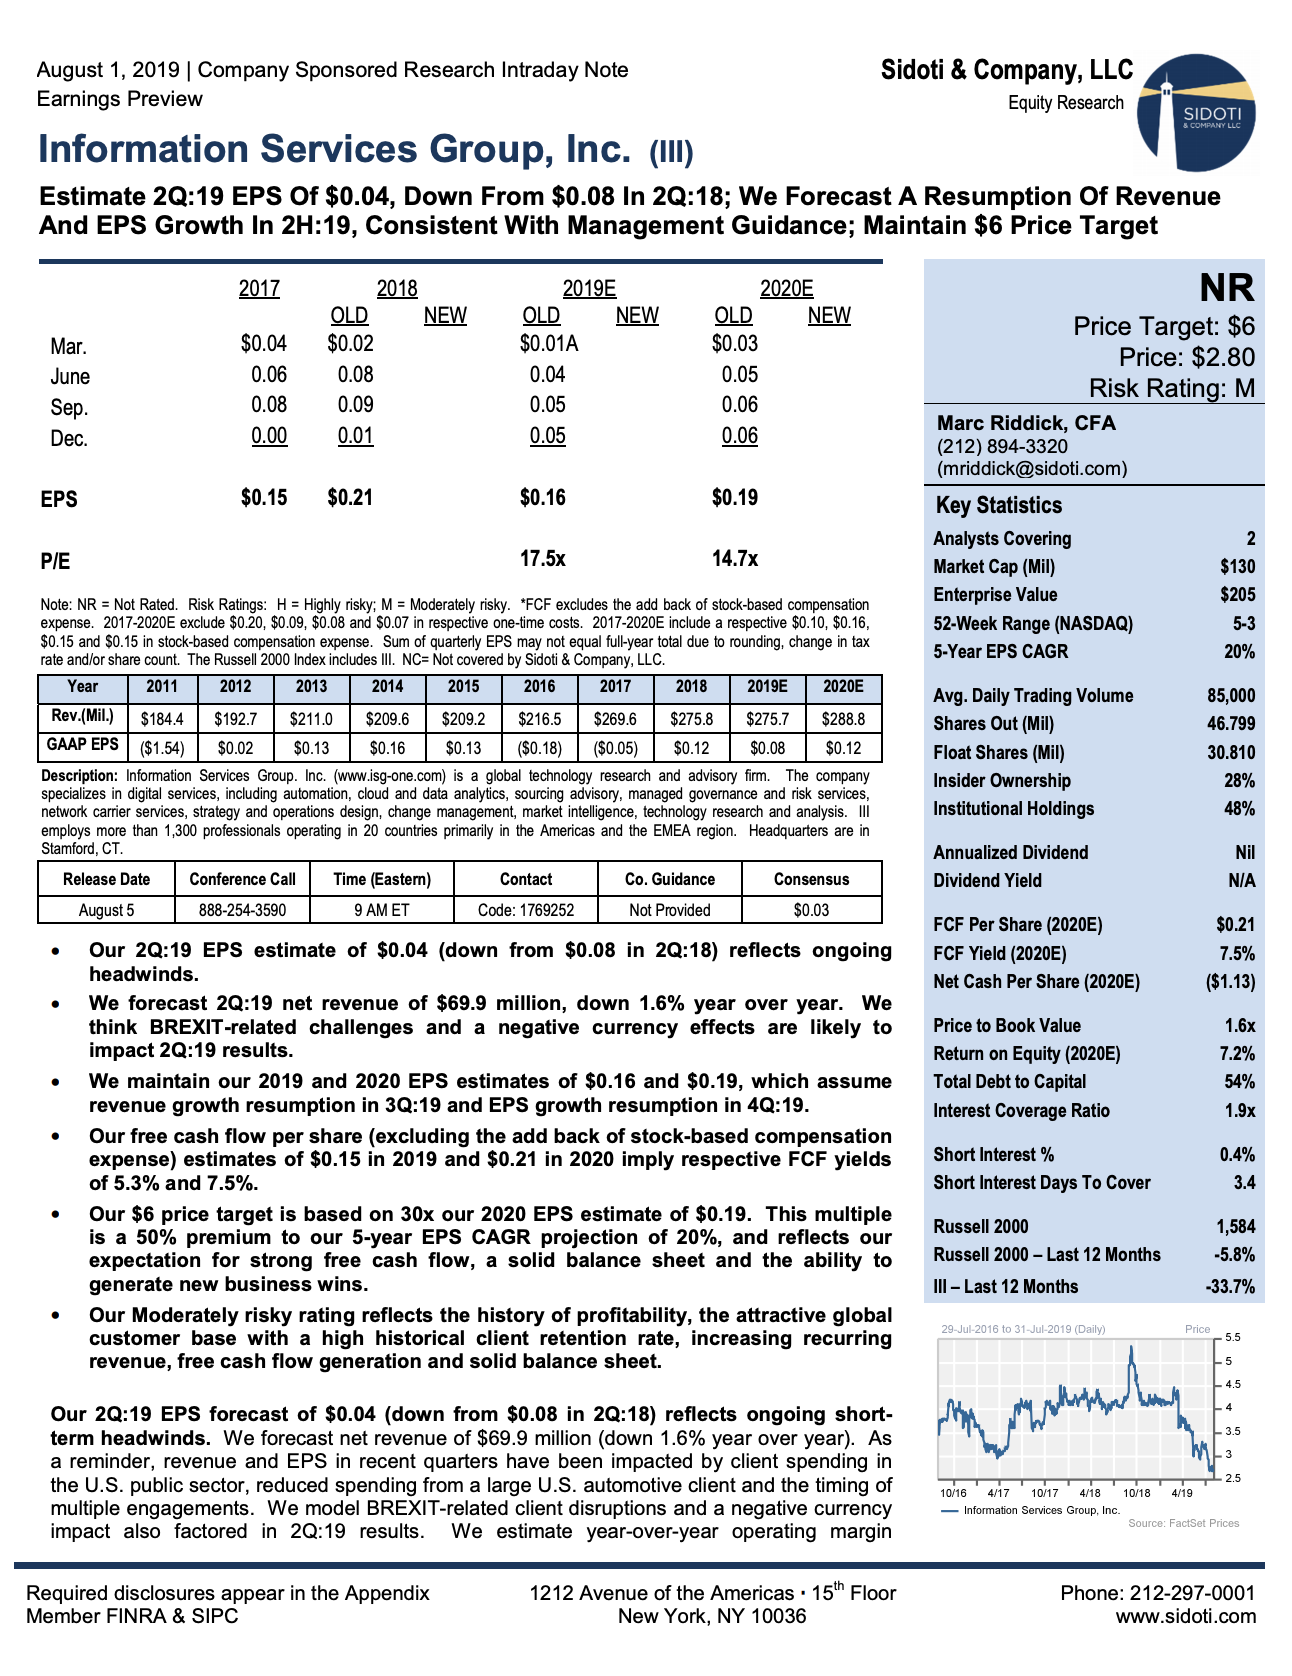 Earnings Preview: August 1, 2019